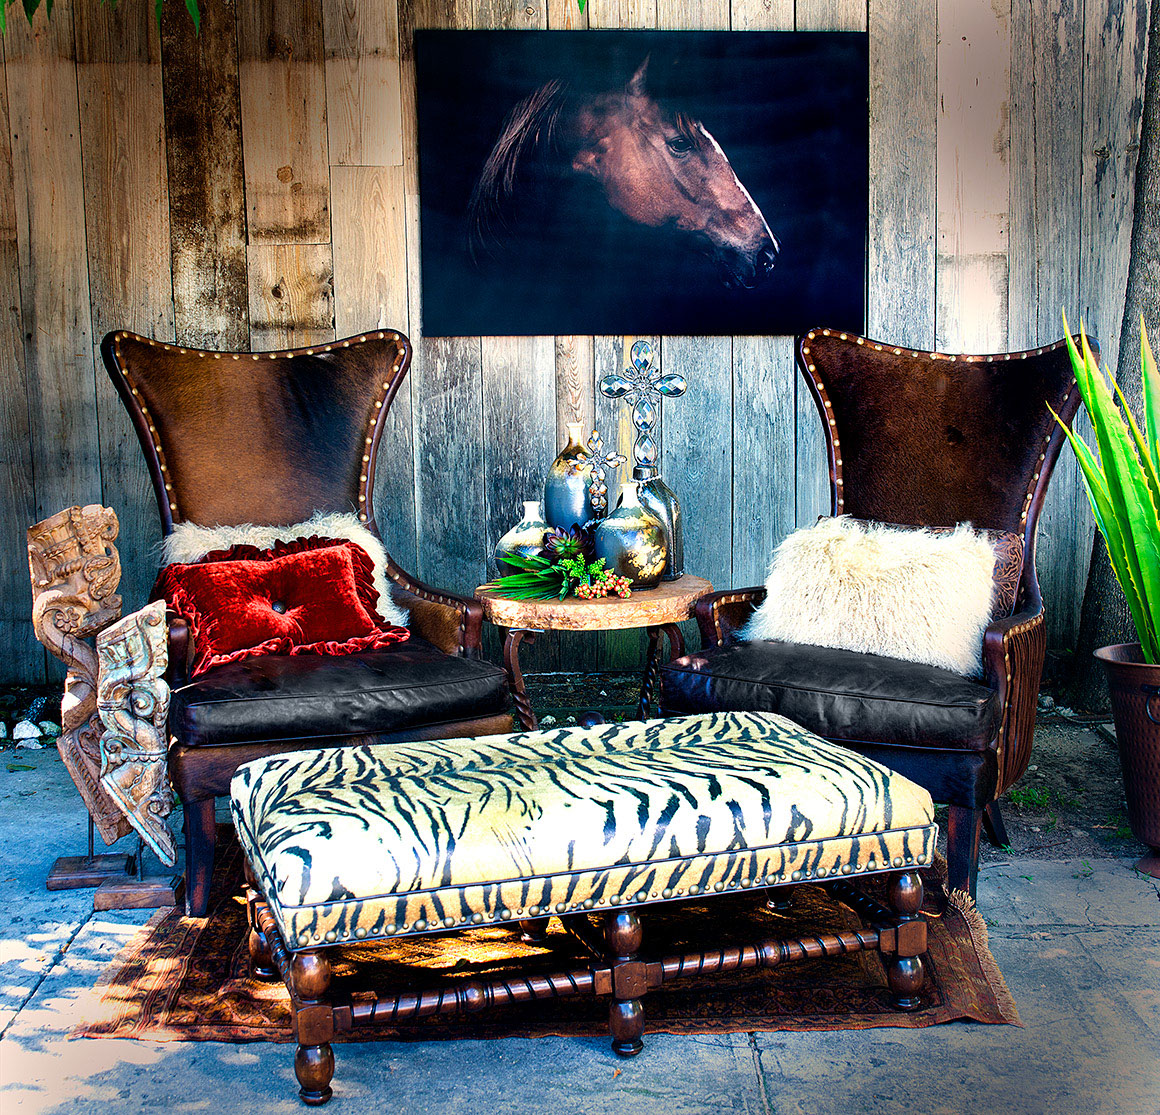 Accent Pieces, Chairs, Barstools Furniture Fabric By Calamity Janeu0027s  Trading Co. In Boerne